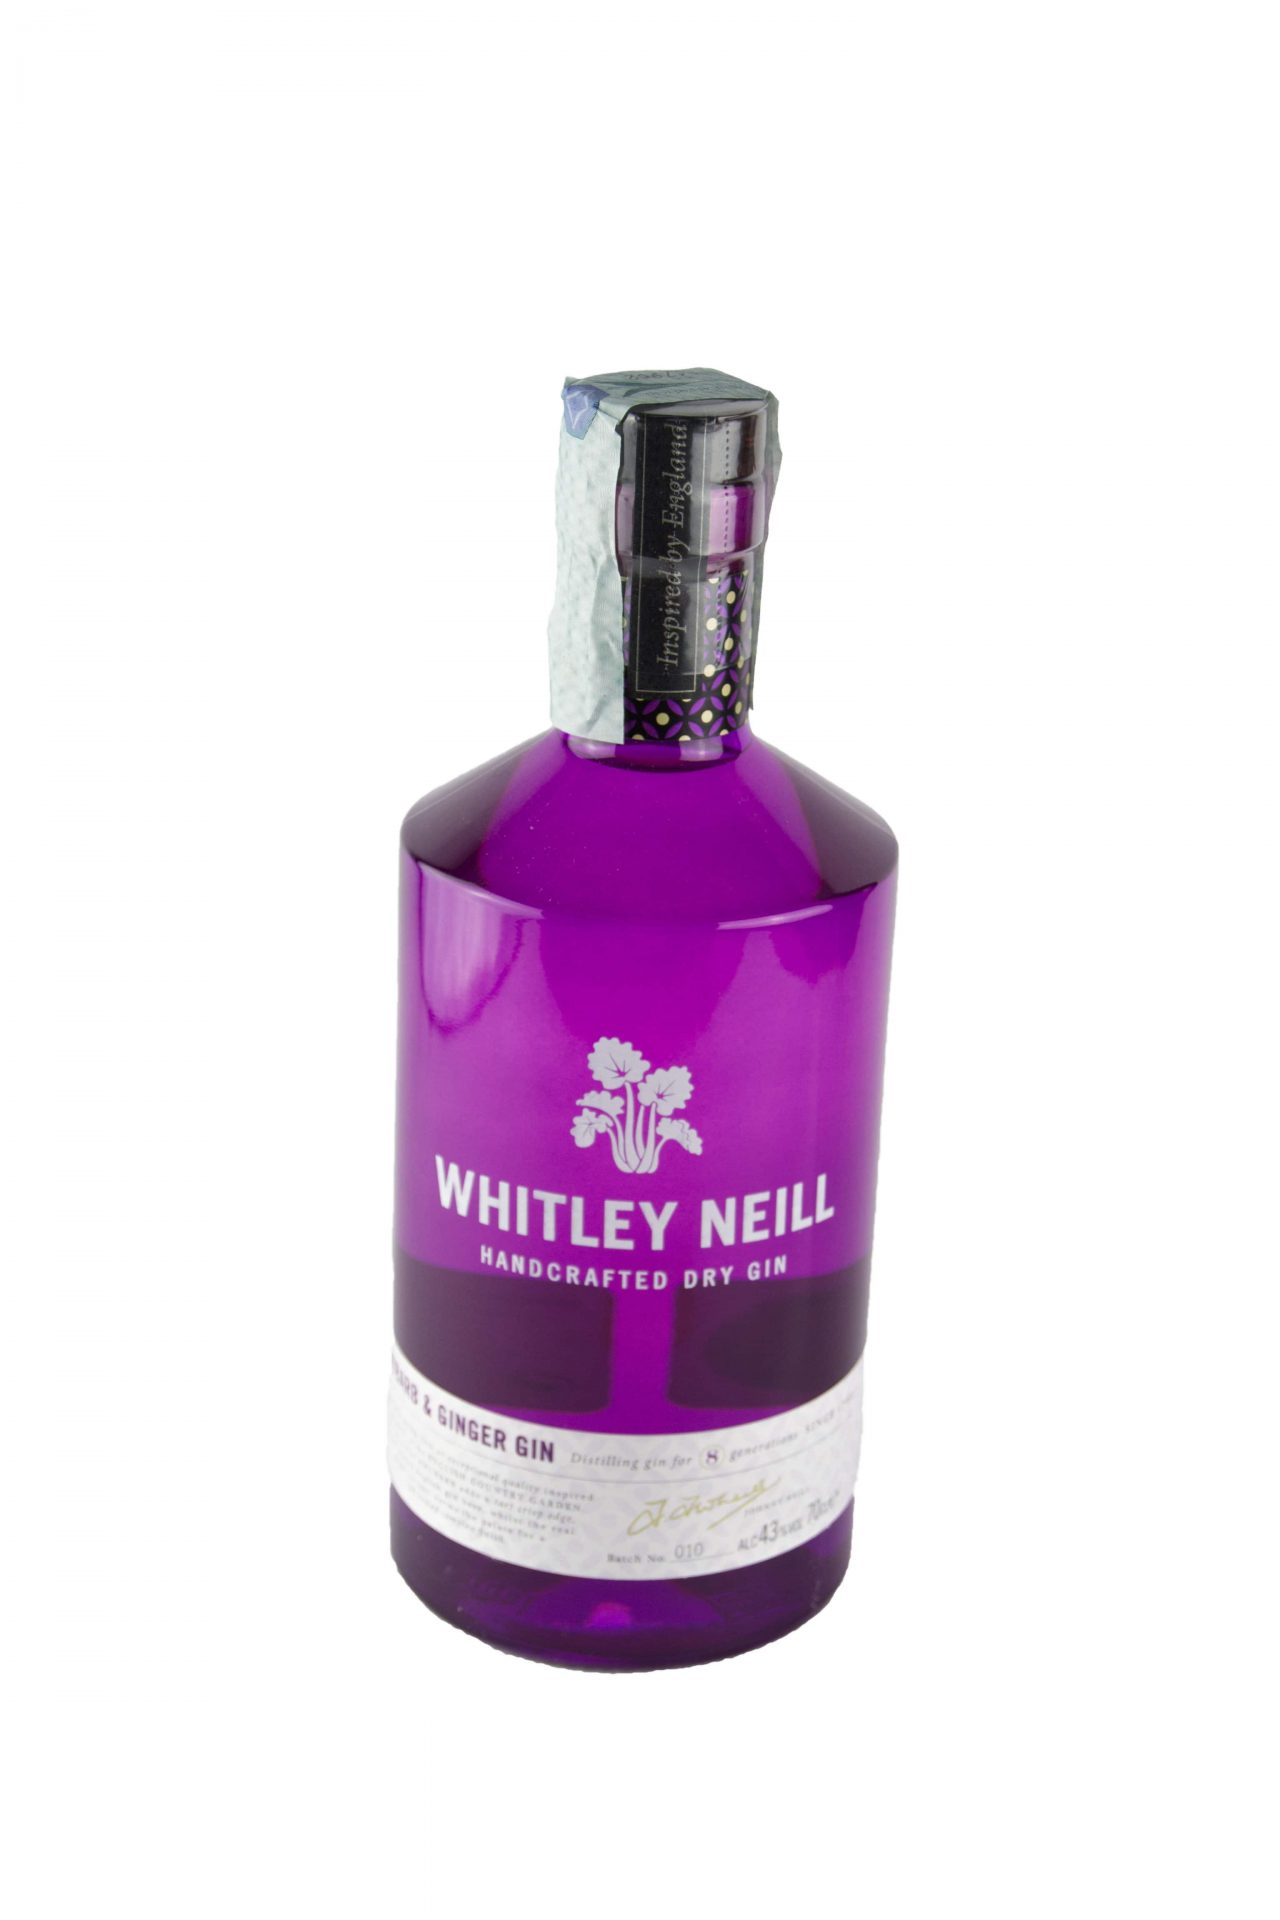 Whitley Neill Rhubarb & Ginger